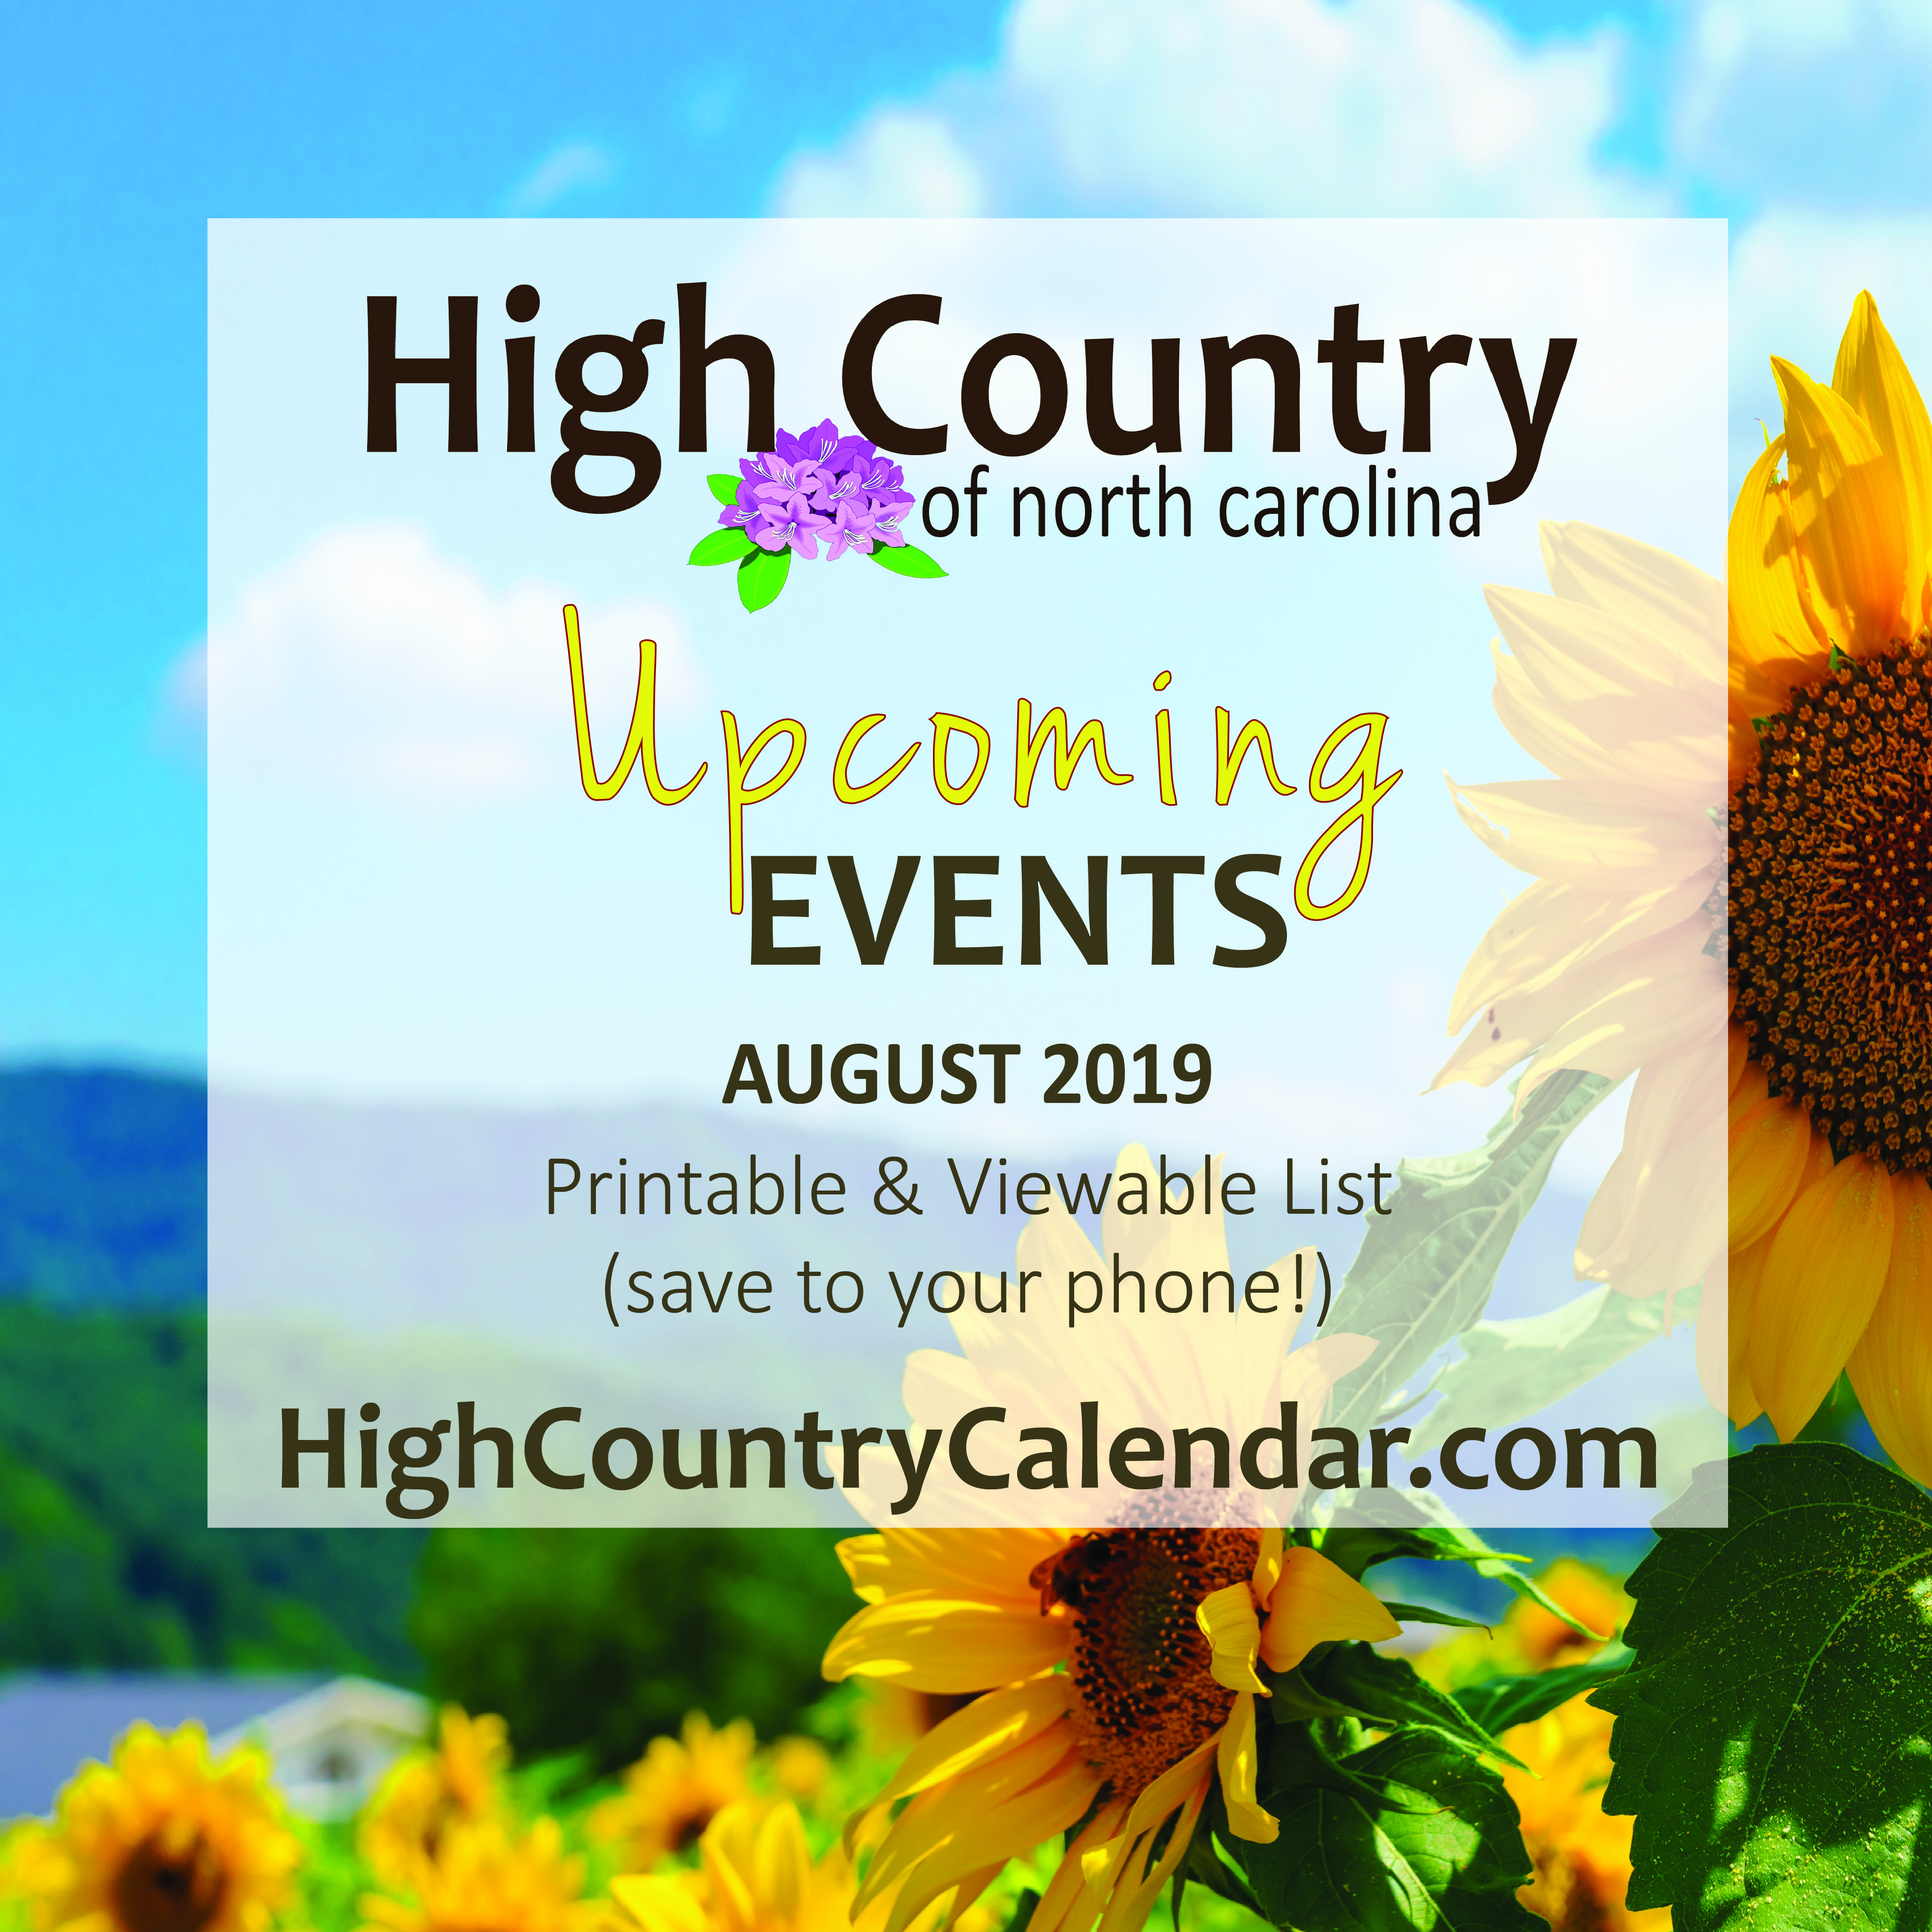 High Country Events Calendar August 2019